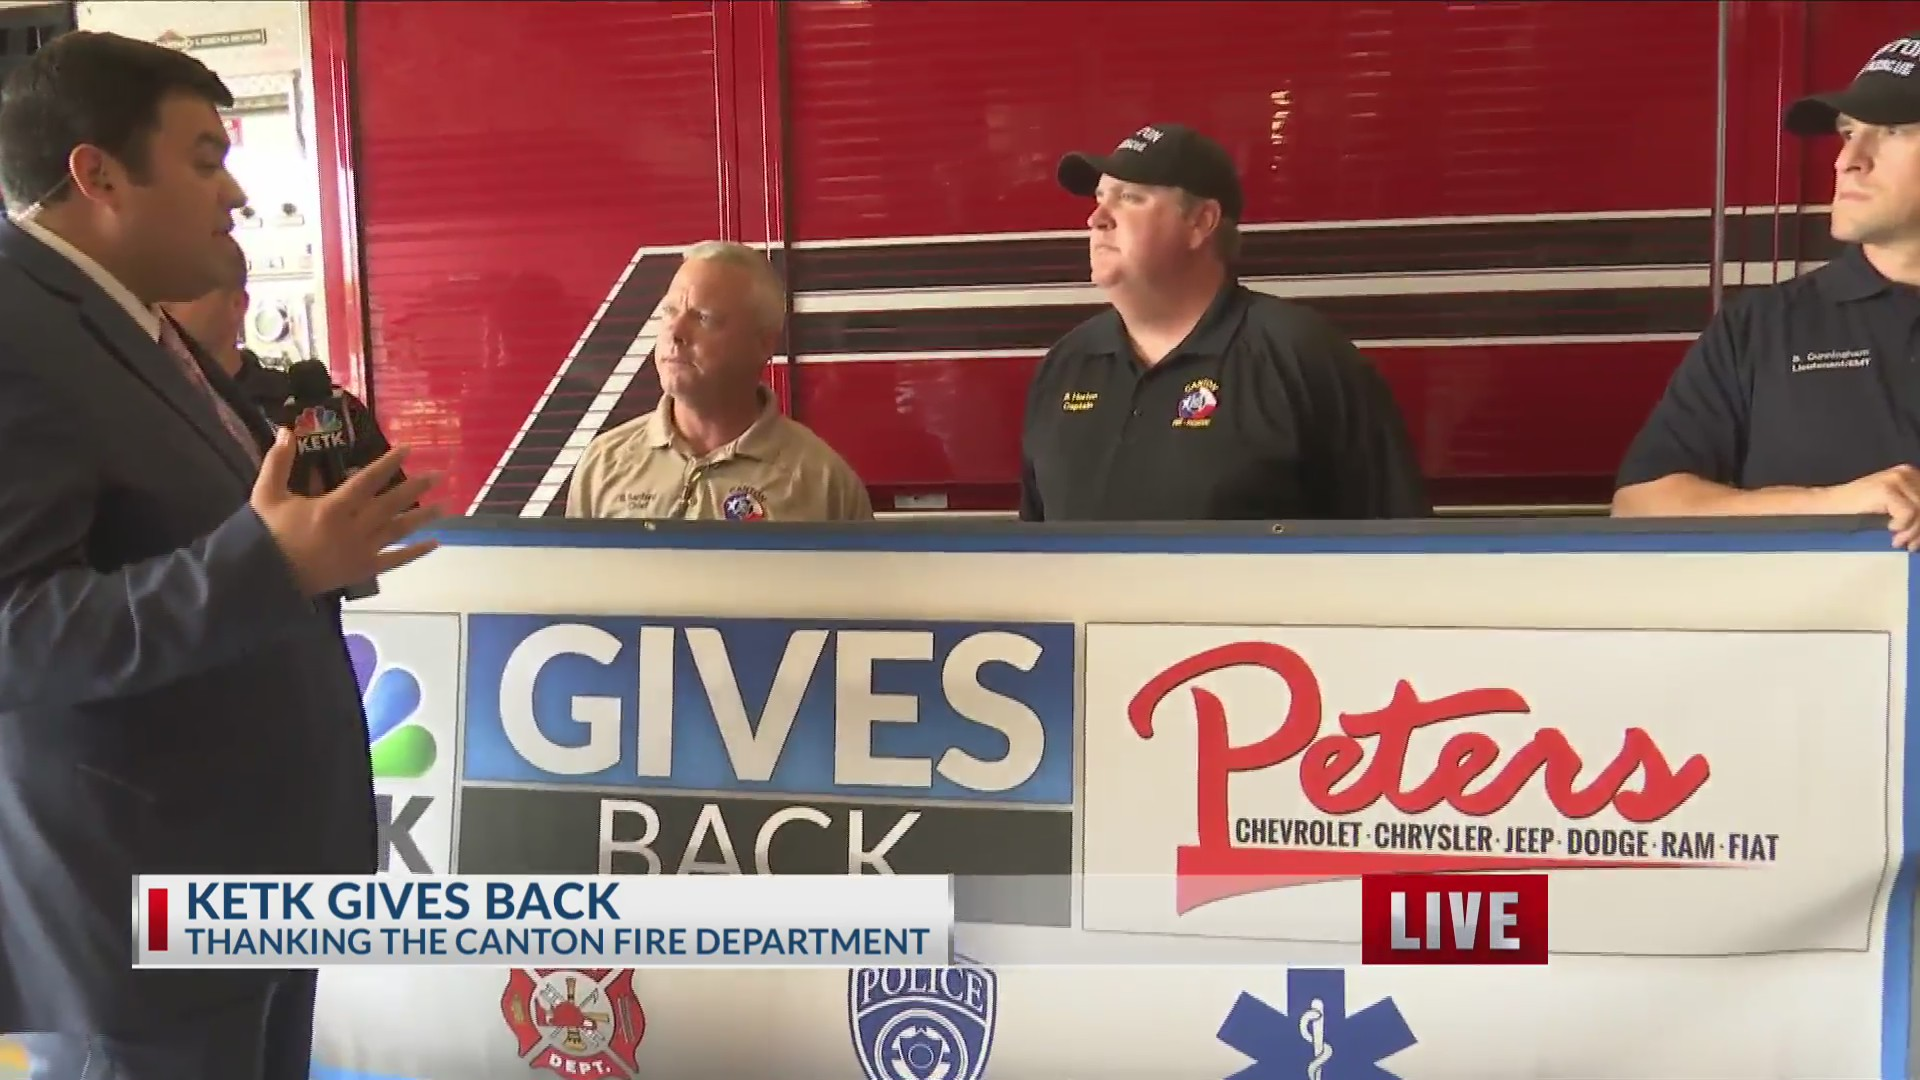 KETK gives back to Canton Fire Department | KETK | FOX51